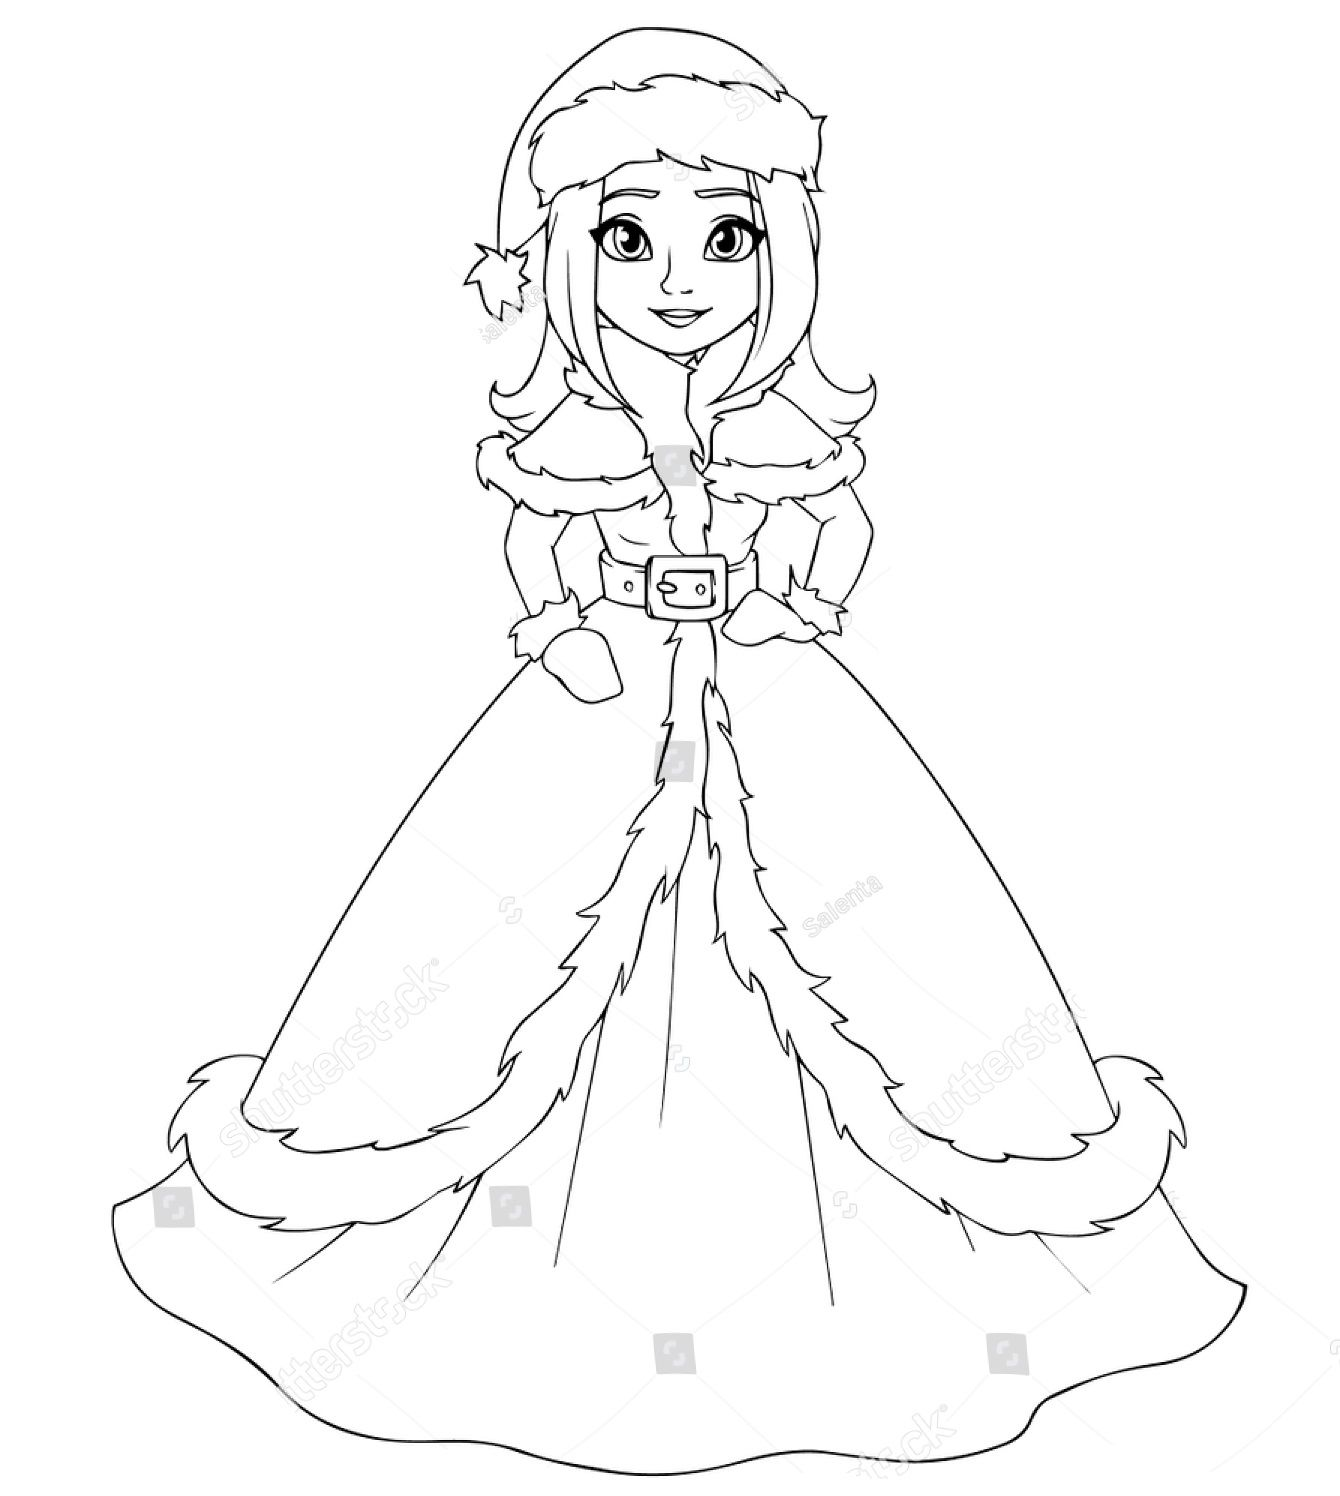 Winter Princess Coloring Pages - Workberdubeat Coloring